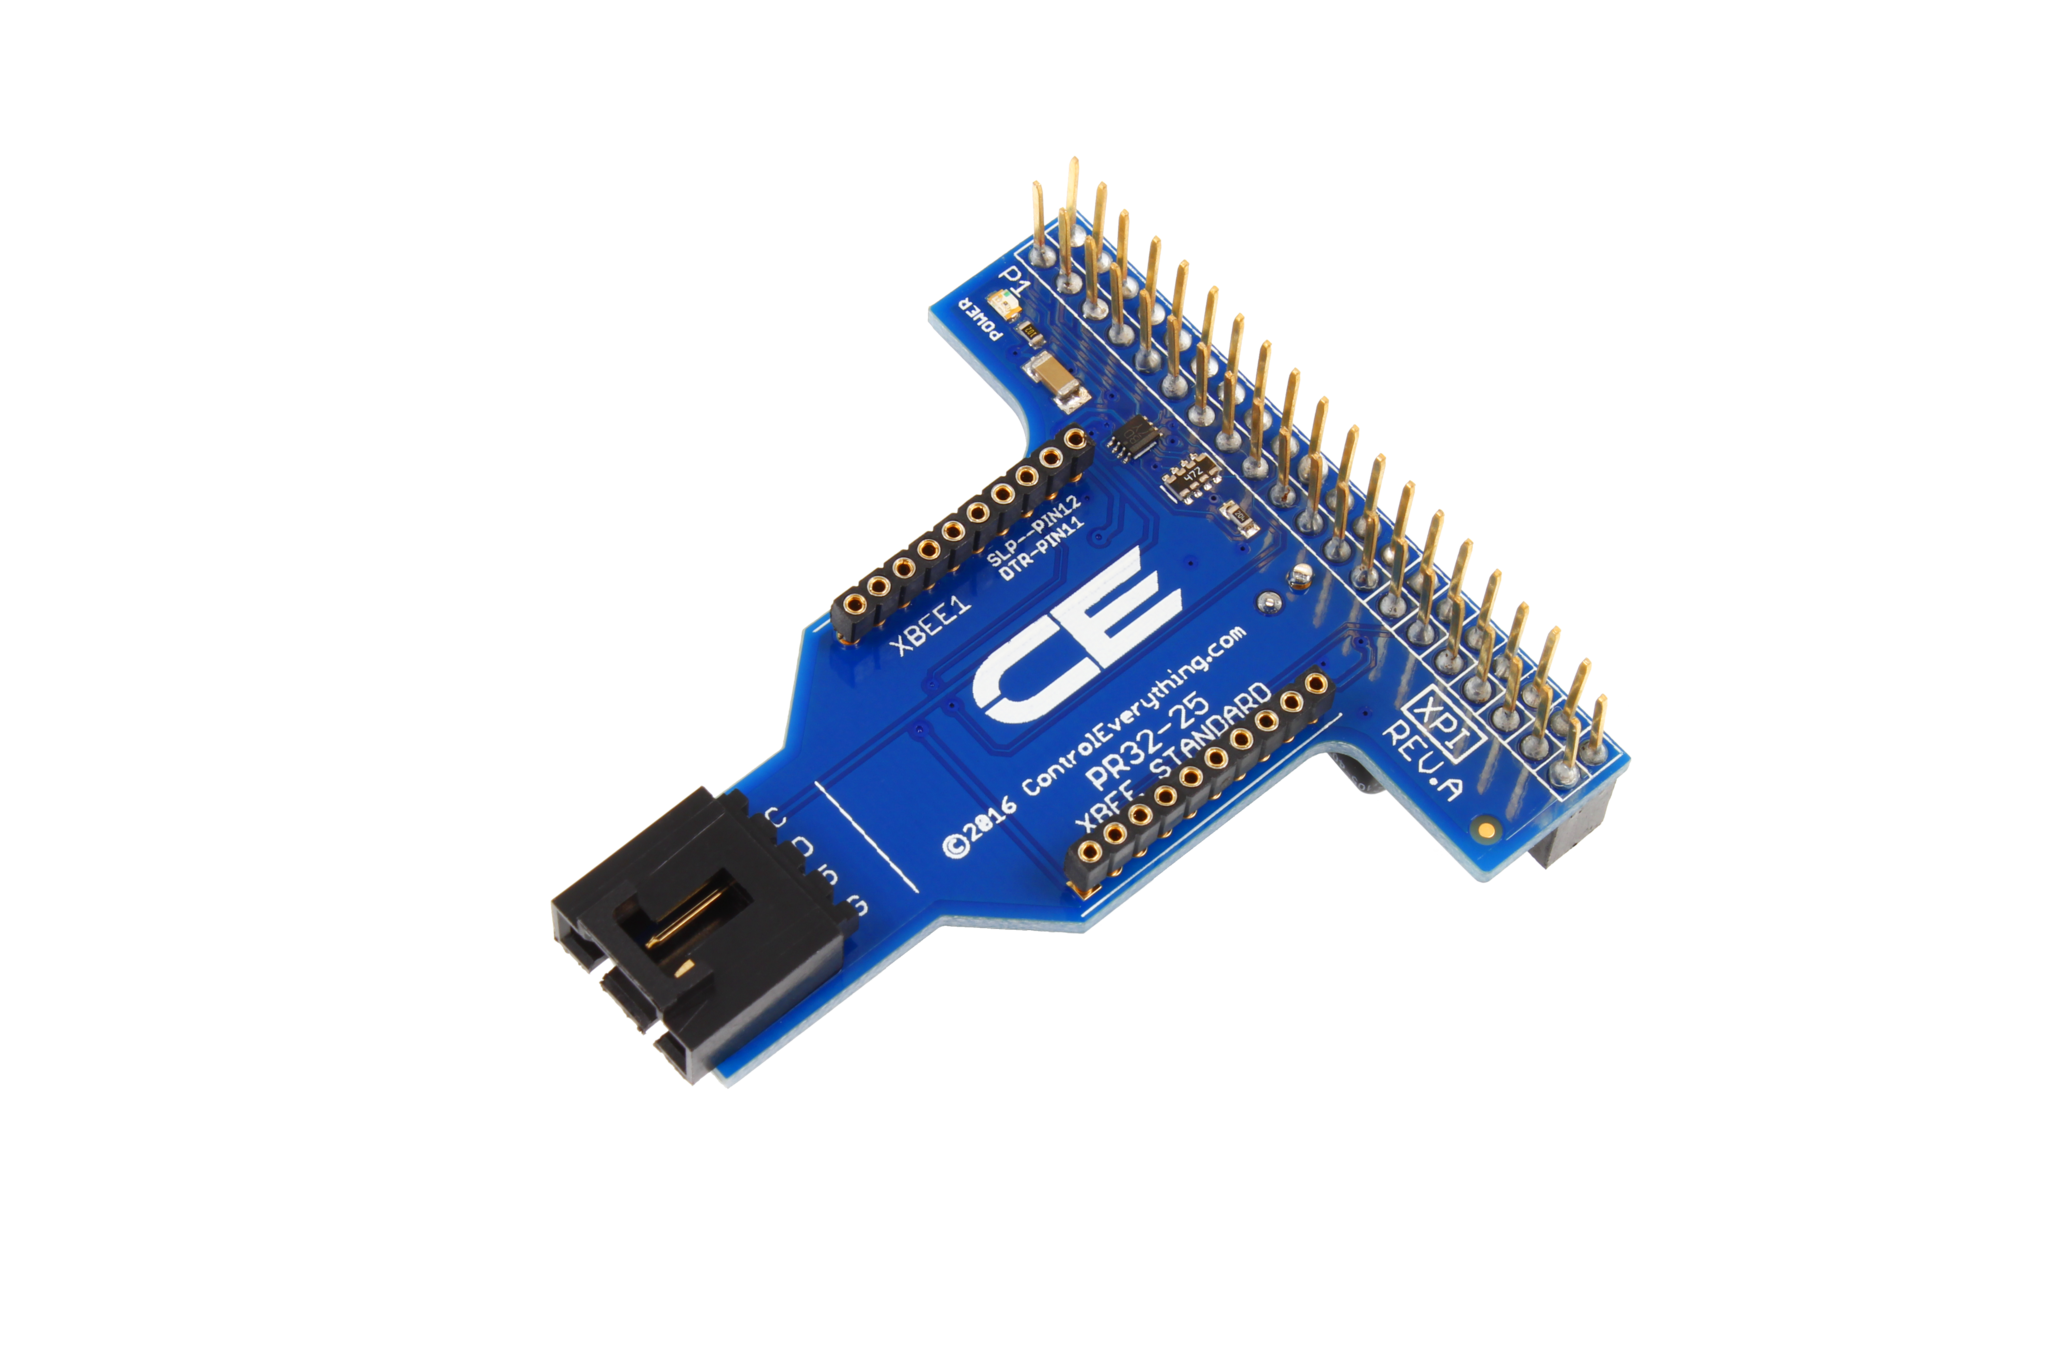 I2C Shield for Raspberry Pi 2 & 3 with Outward Facing I2C and  Communications Port